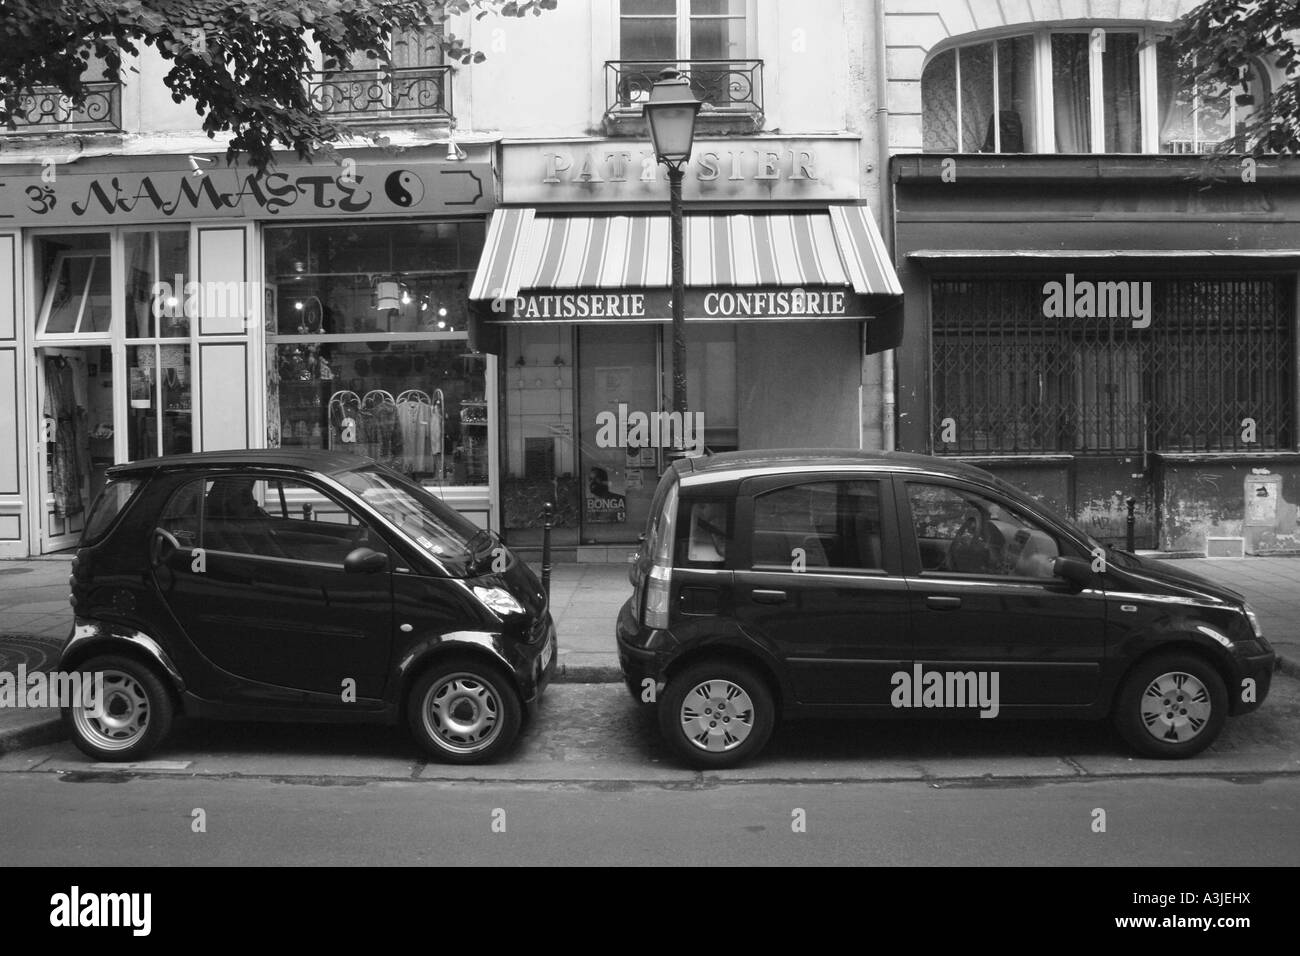 Two small cars parked on the streets of Paris. - Stock Image